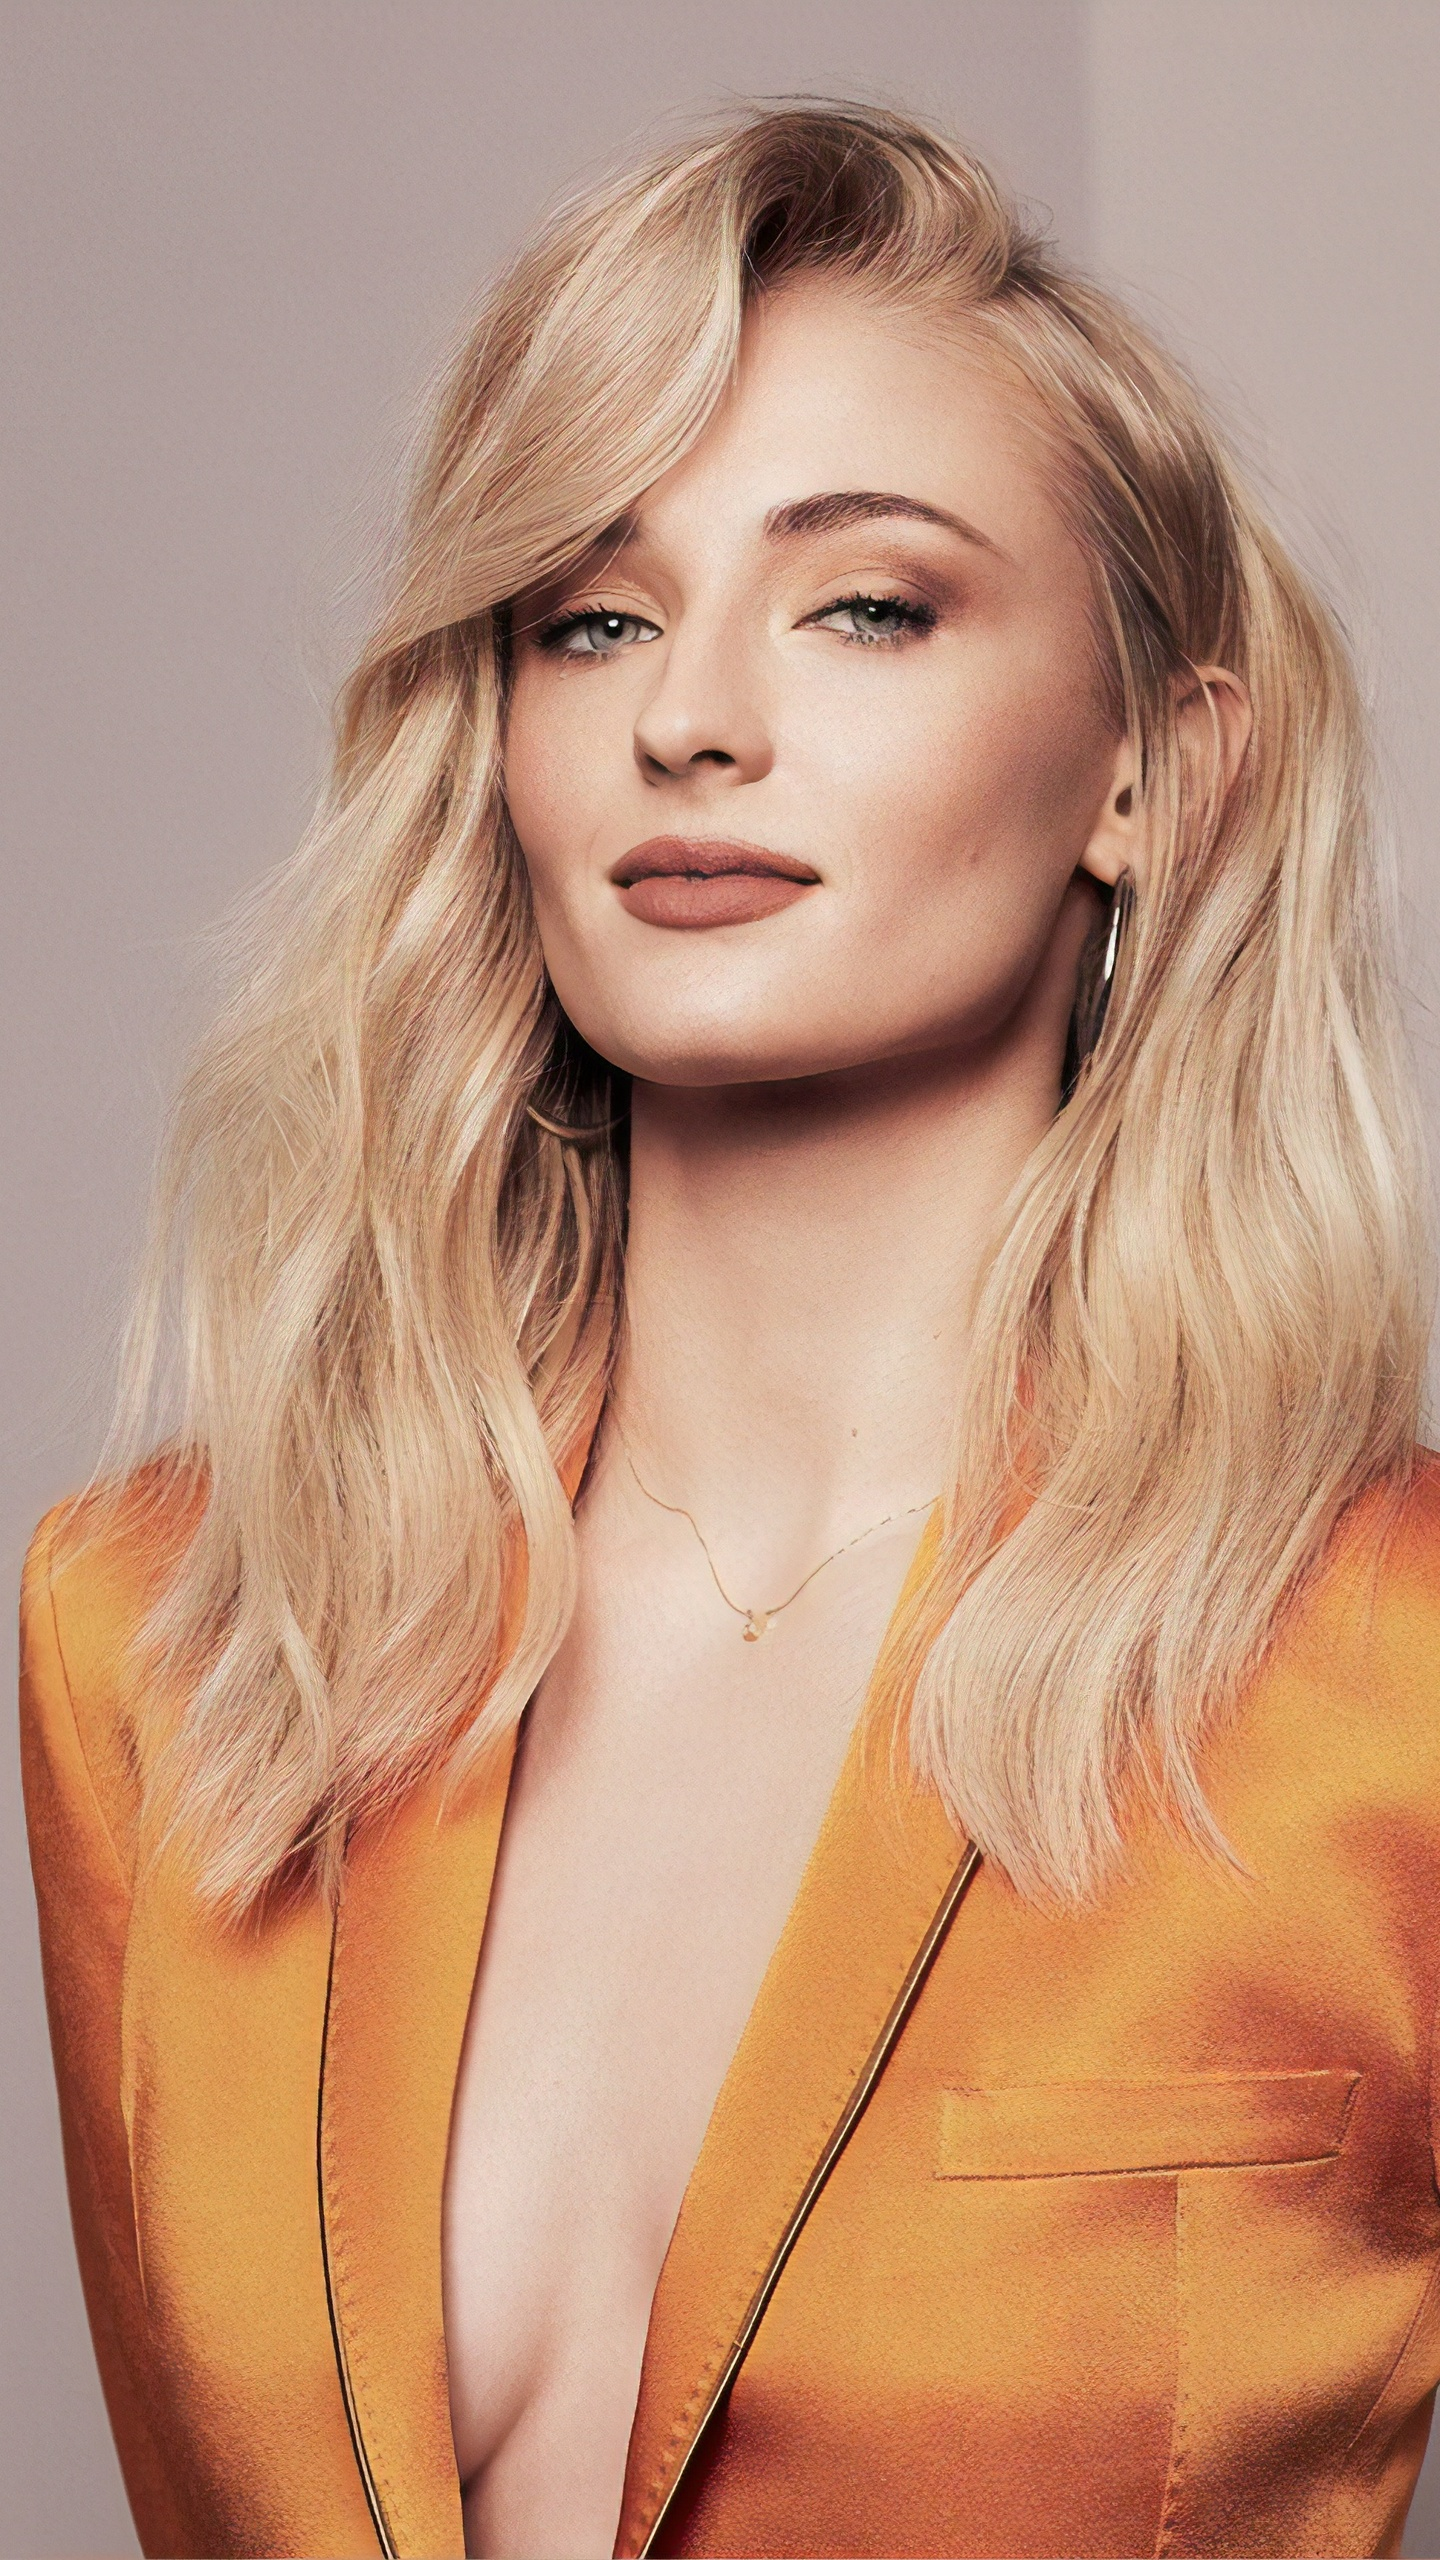 sophie-turner-joy-magazine-photoshoot-ul.jpg